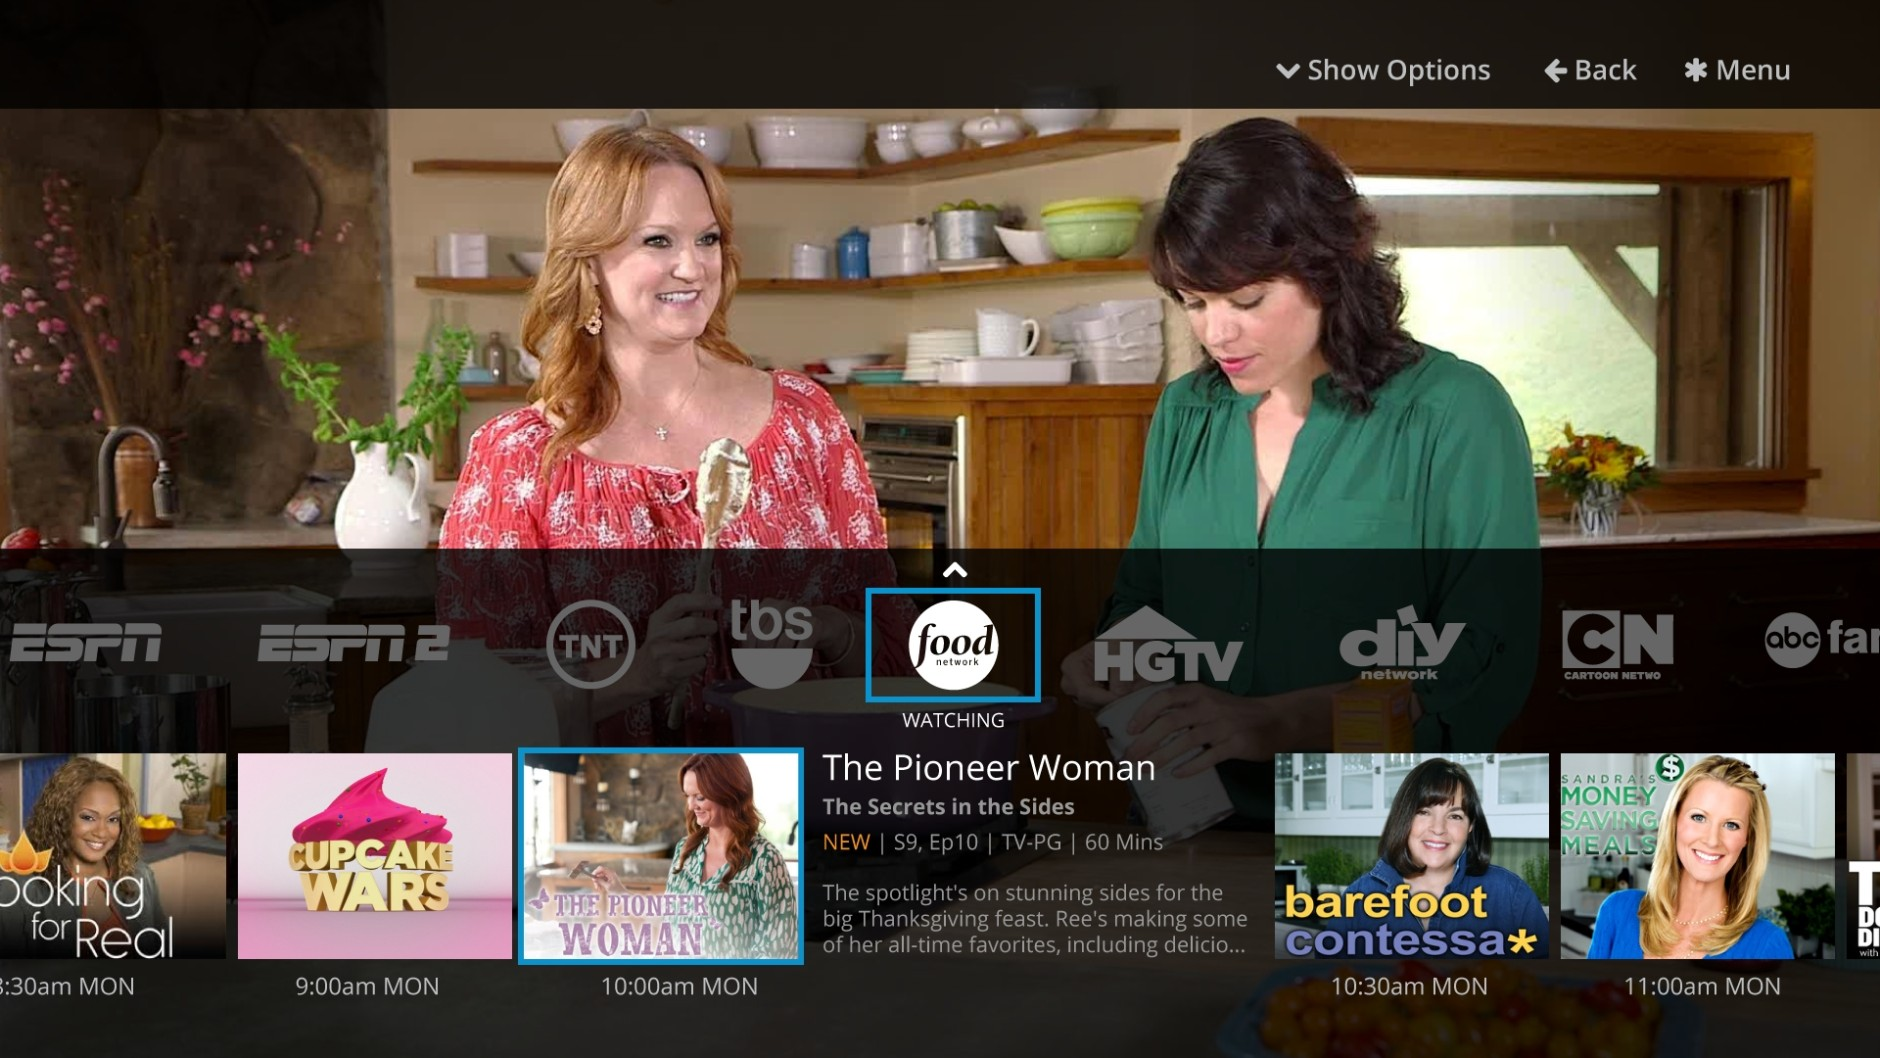 This undated image provided by SlingTV shows a view of the network miniguide on the Sling TV app.  The Sling TV service is aimed at people who have dropped cable or satellite service or never had it. (AP Photo/Sling TV)